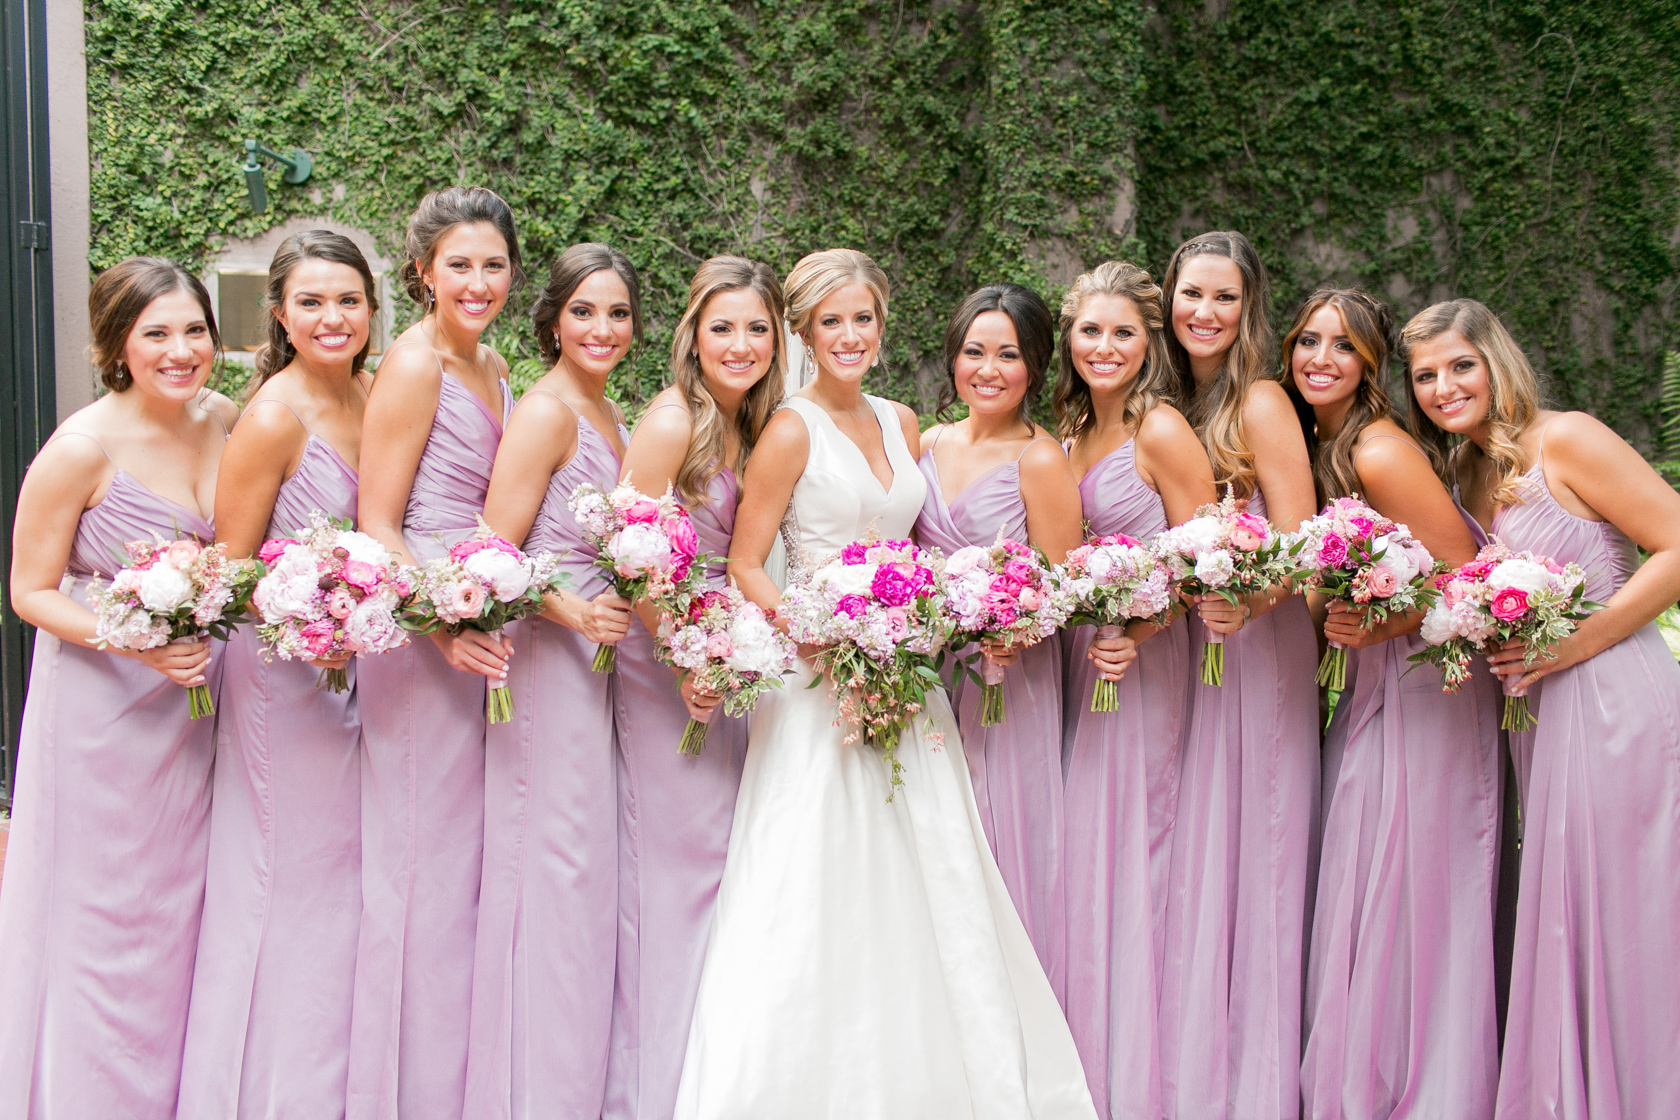 light purple bridesmaid dresses with pops of pink flowers